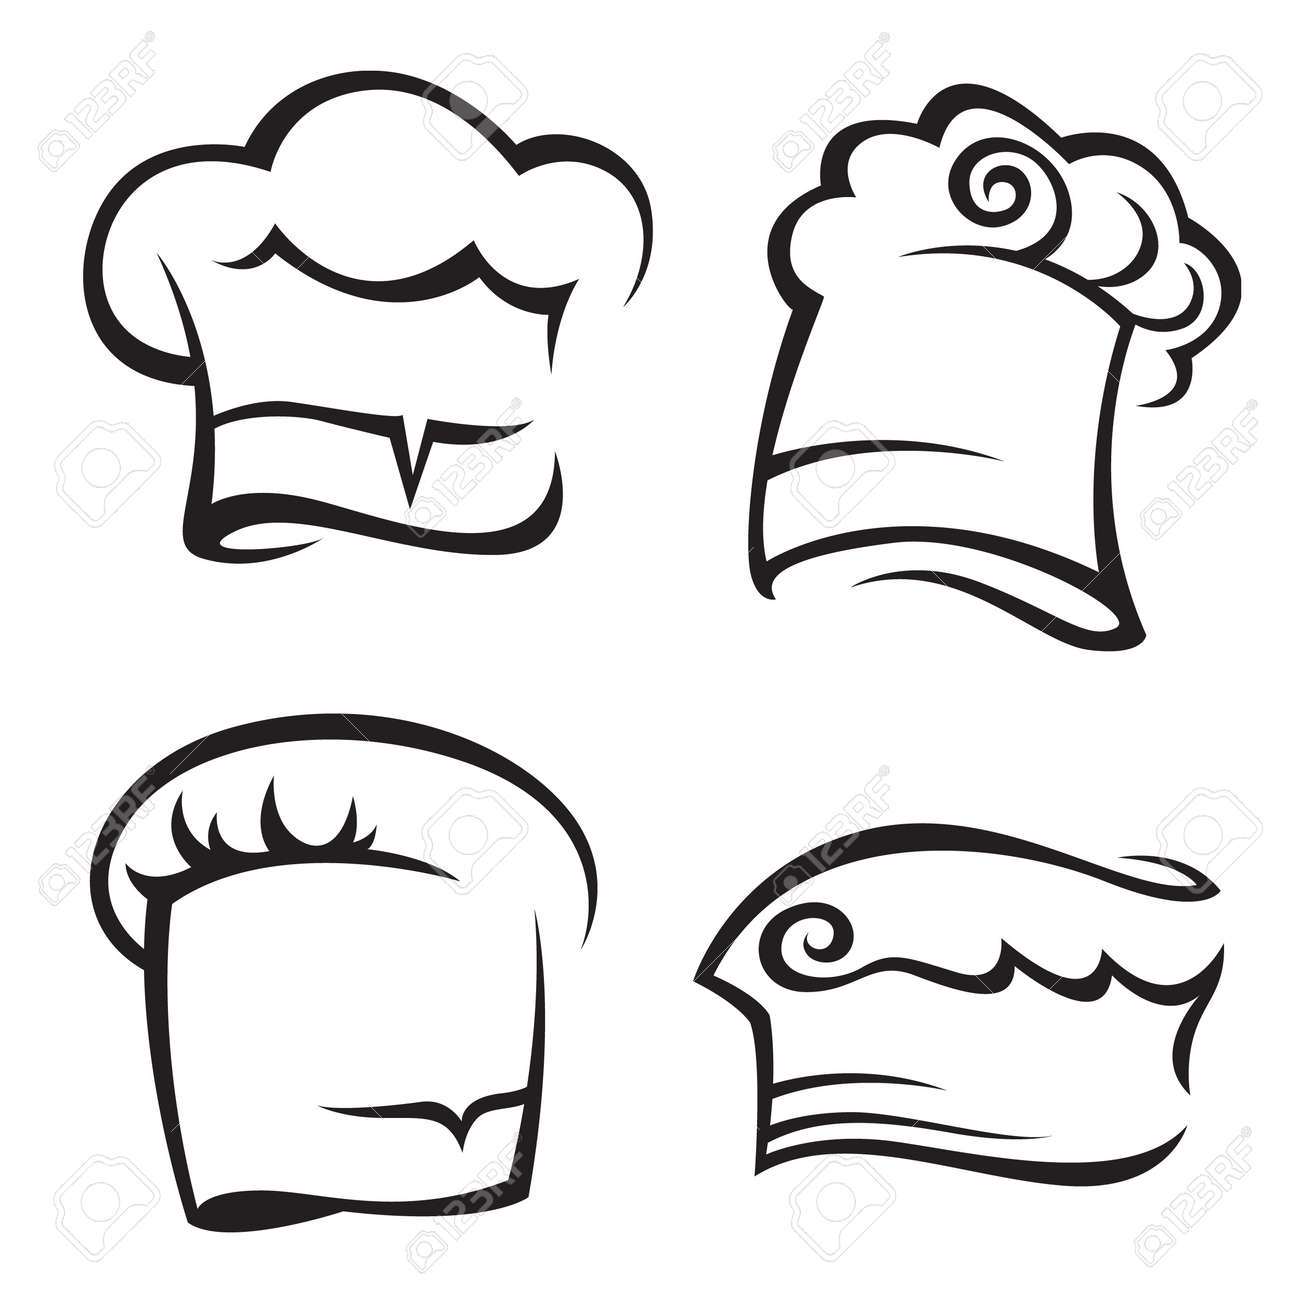 set of chef hats royalty free cliparts vectors and stock